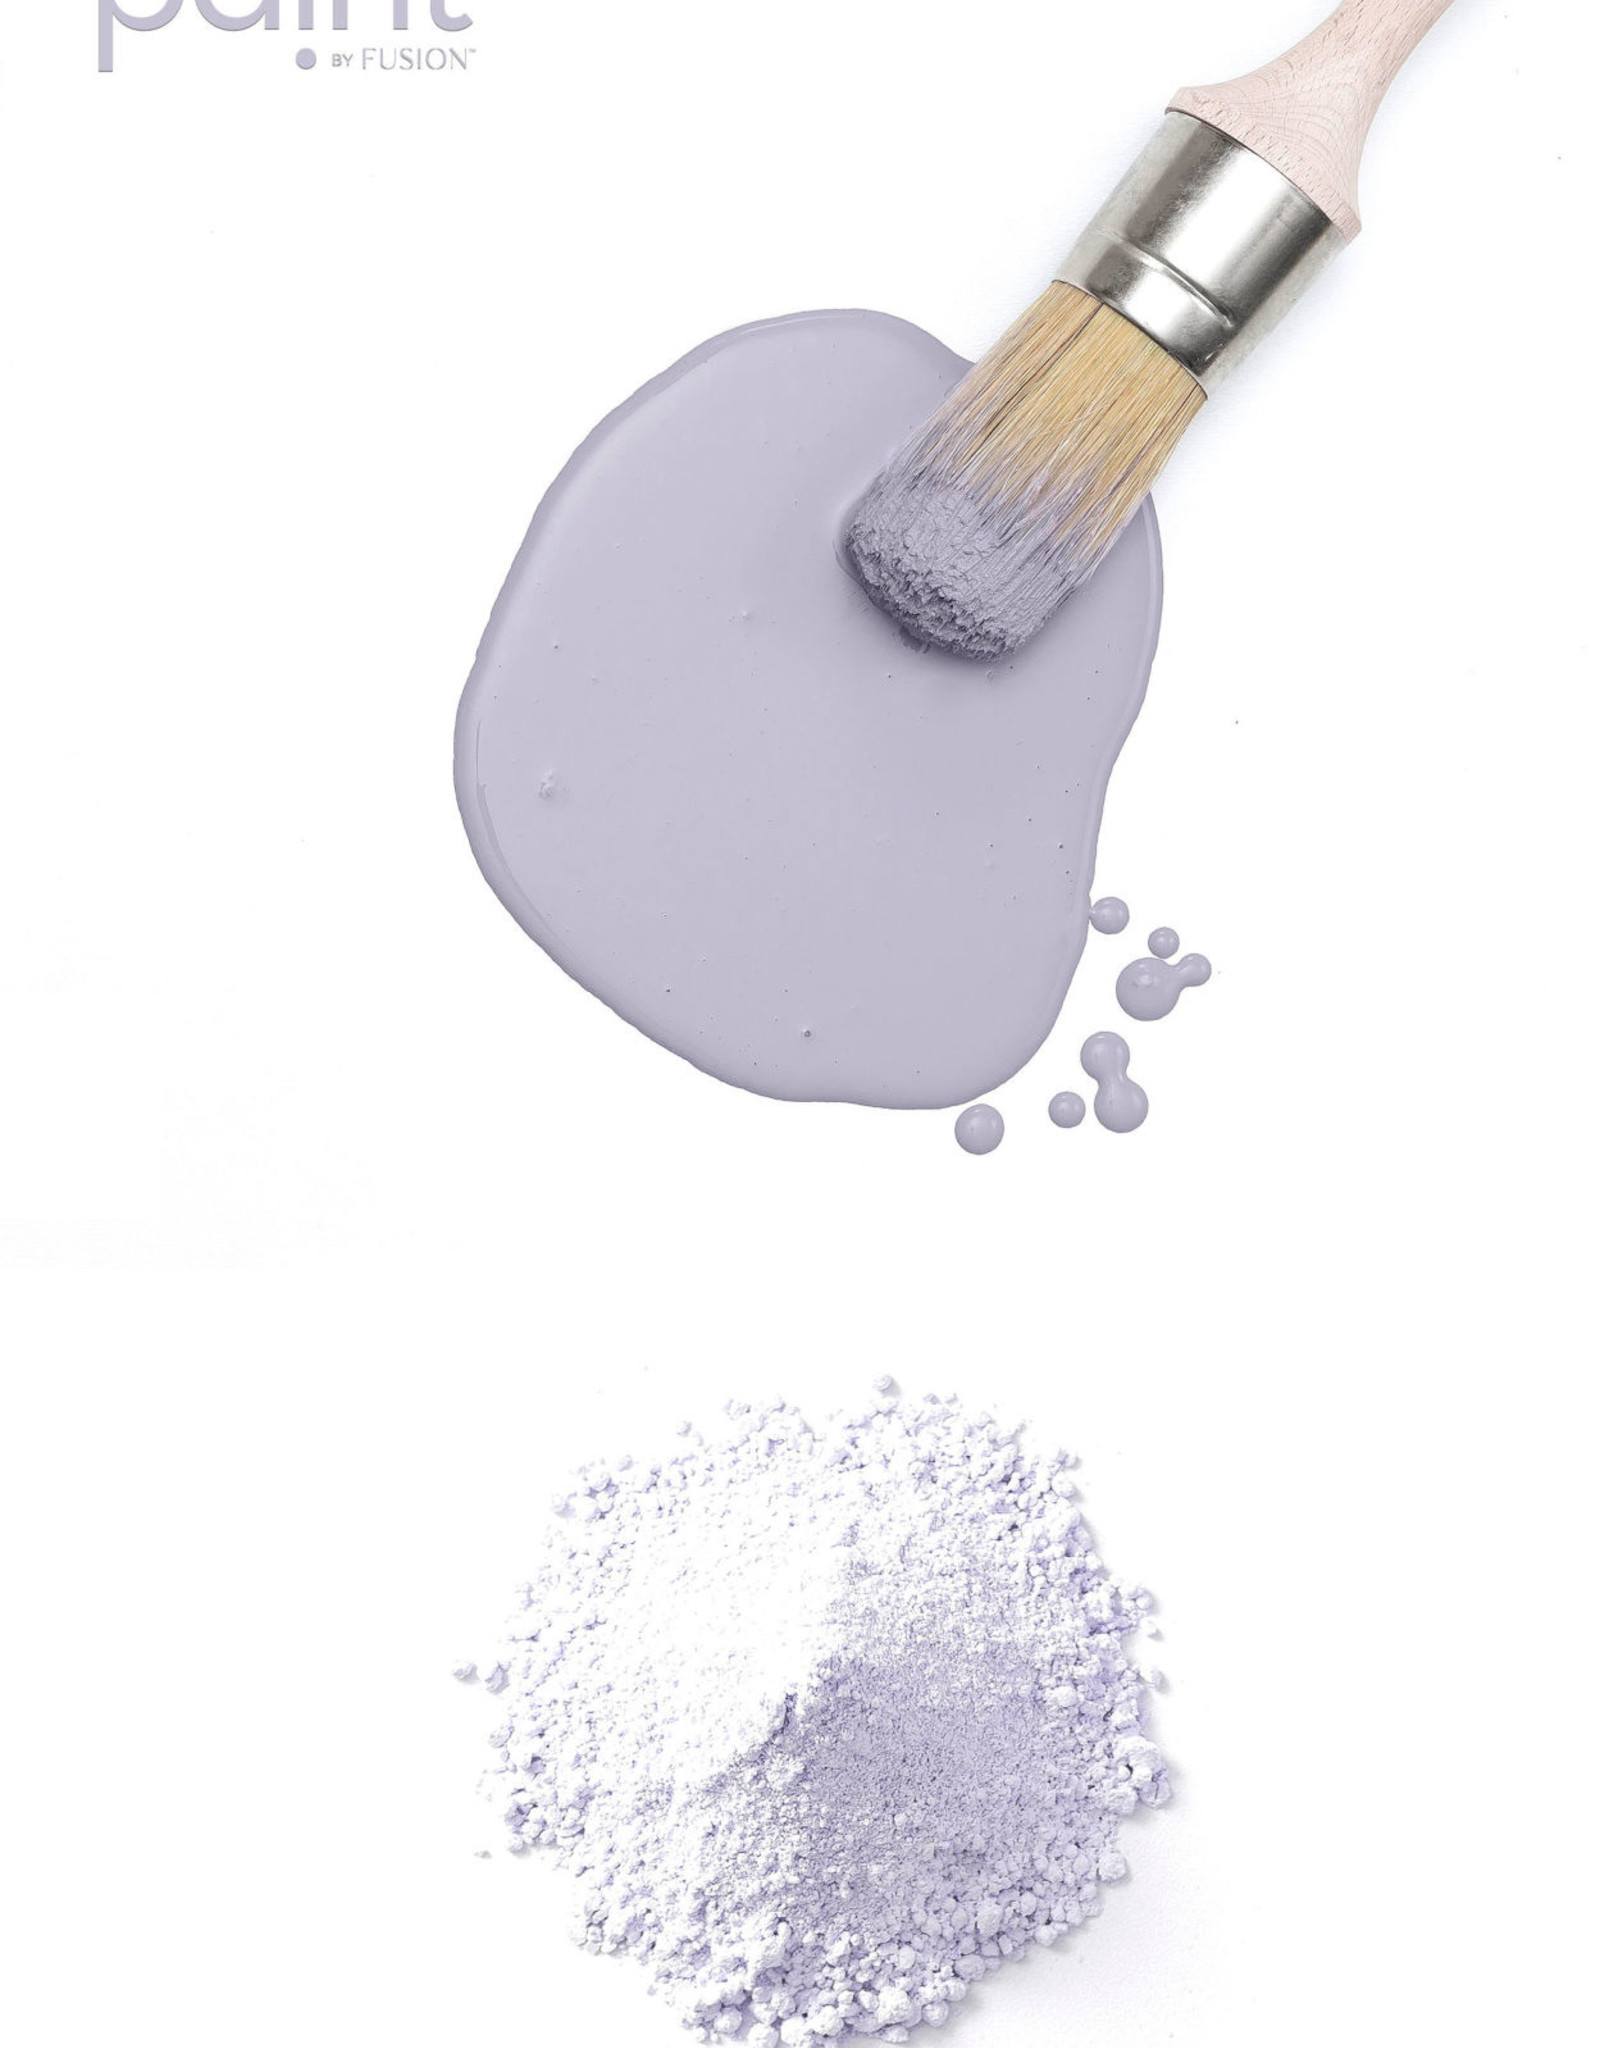 Fusion Mineral Paint Milk Paint 50g Wisteria Row